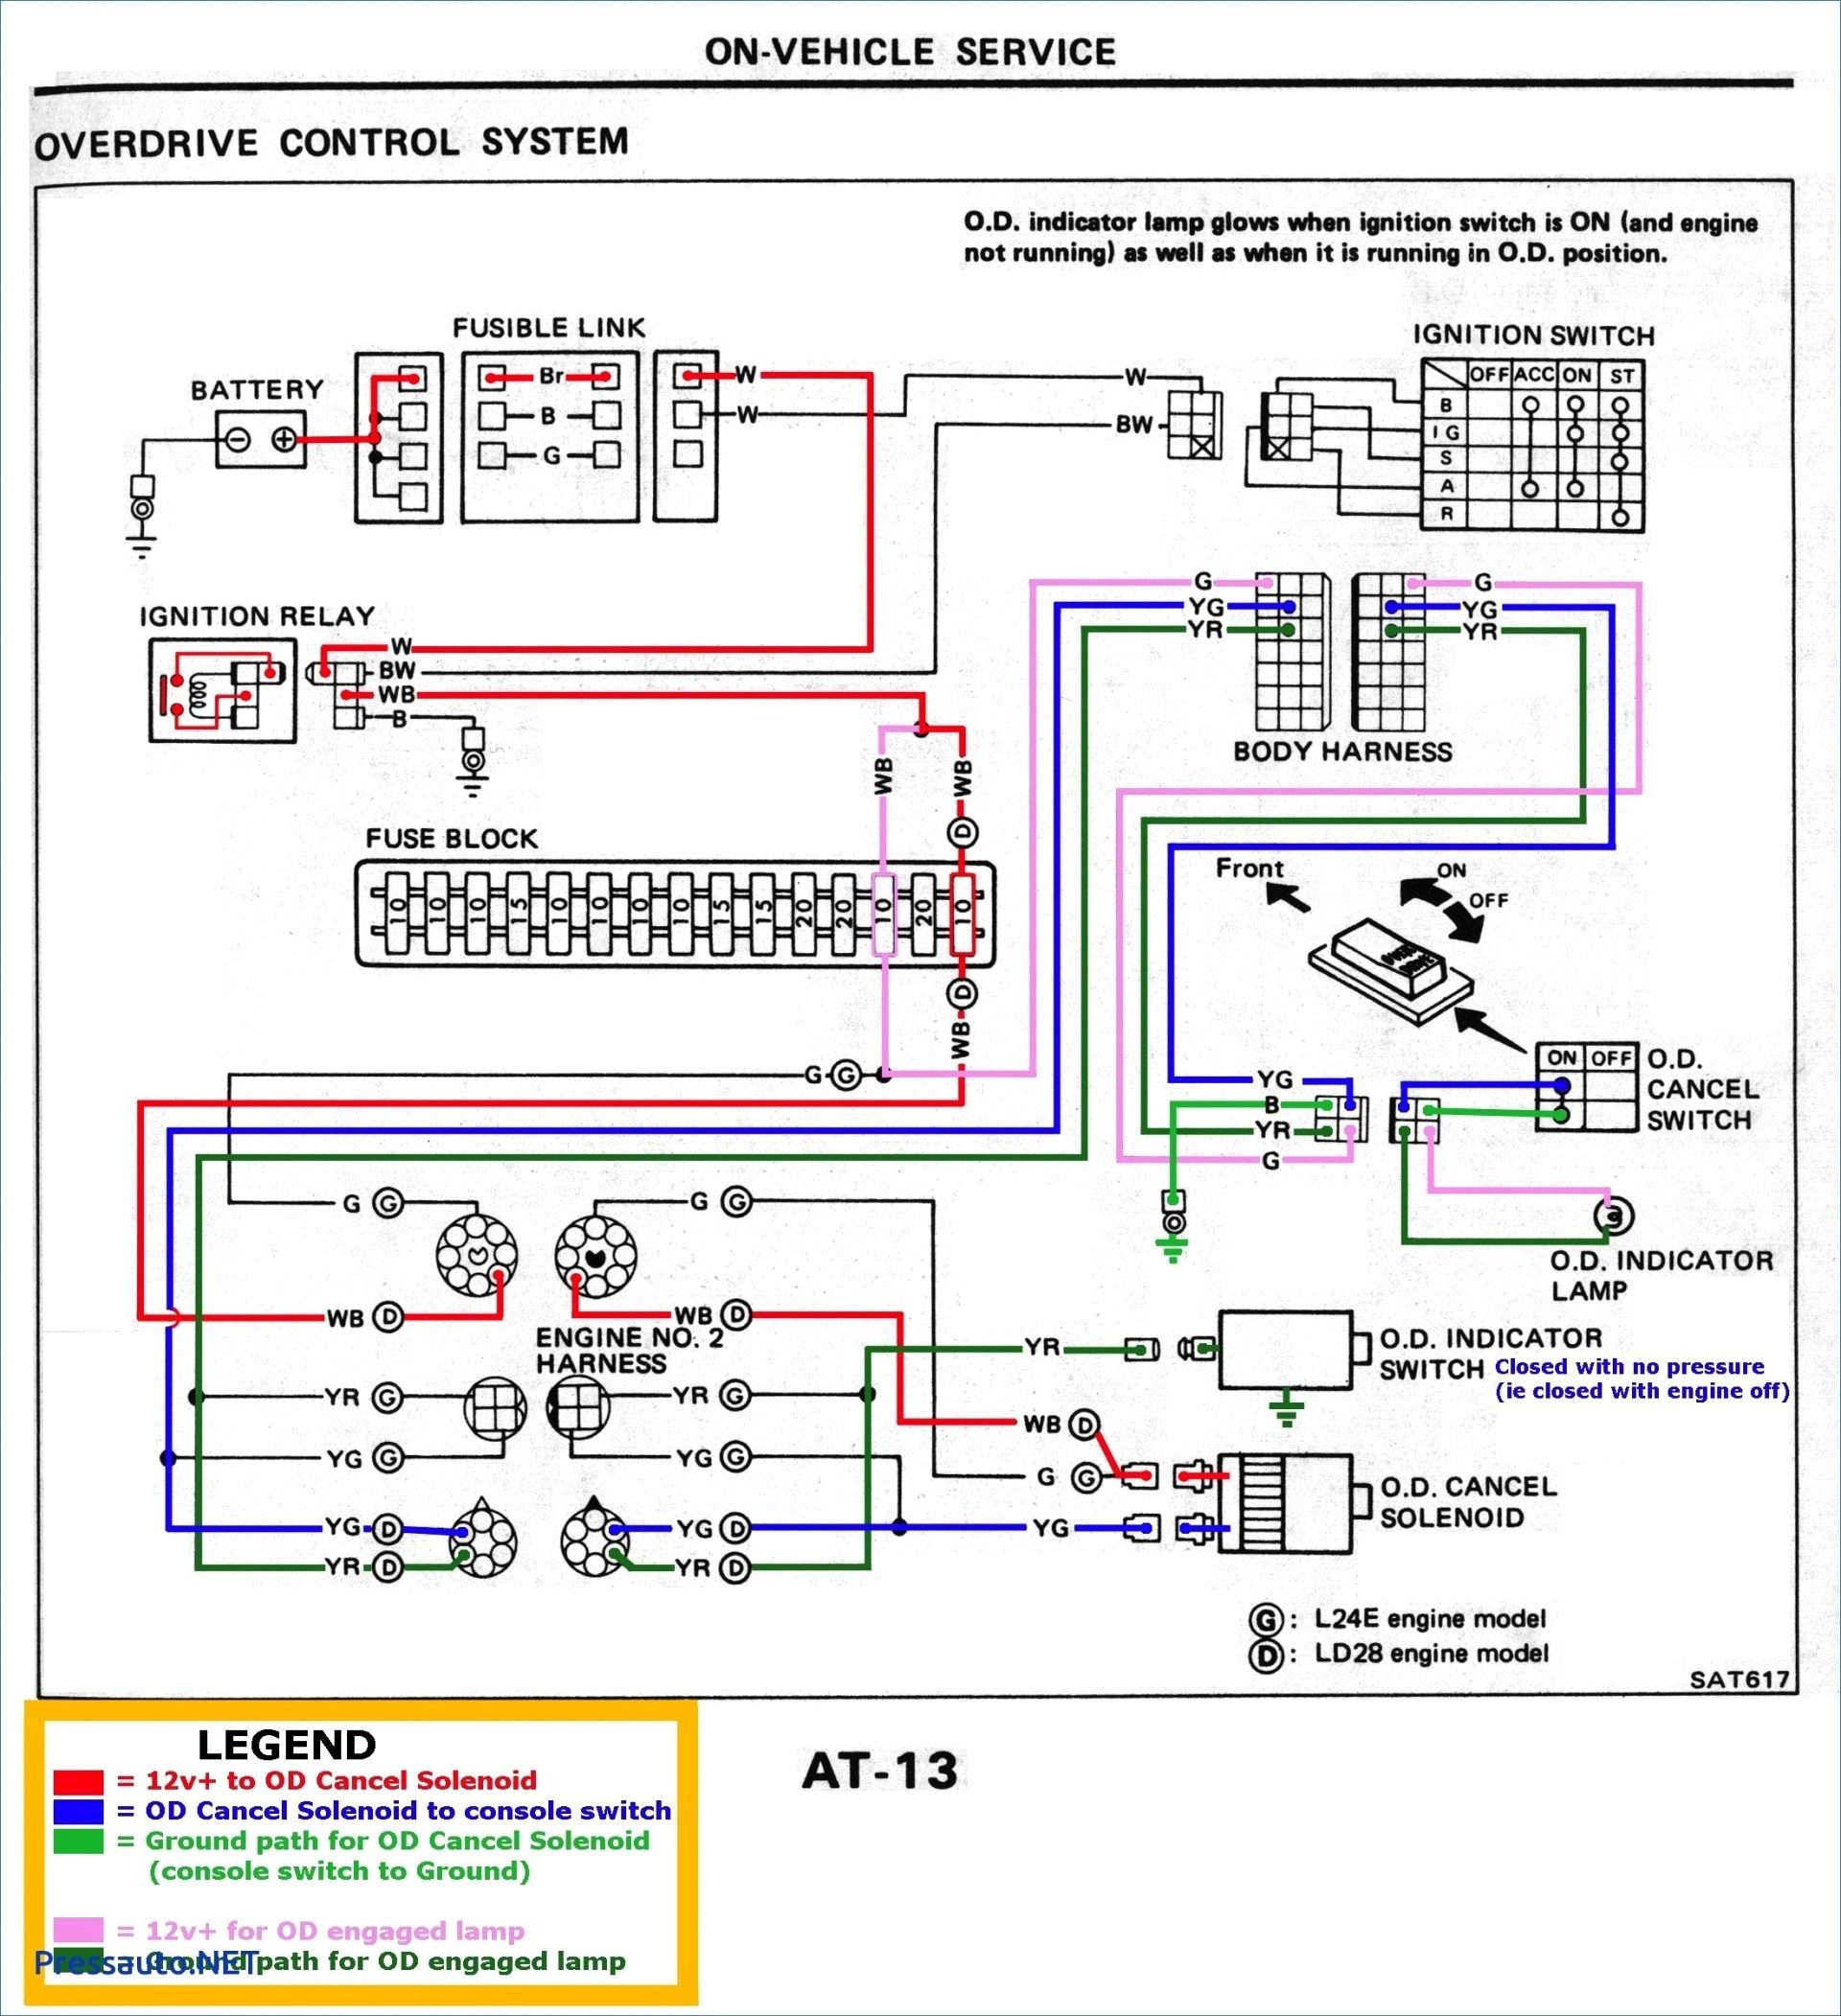 7 Pole Trailer Plug Wiring Diagram Reference Wiring Diagram For 4 Wire Trailer Plug Top Rated Wiring Diagram For